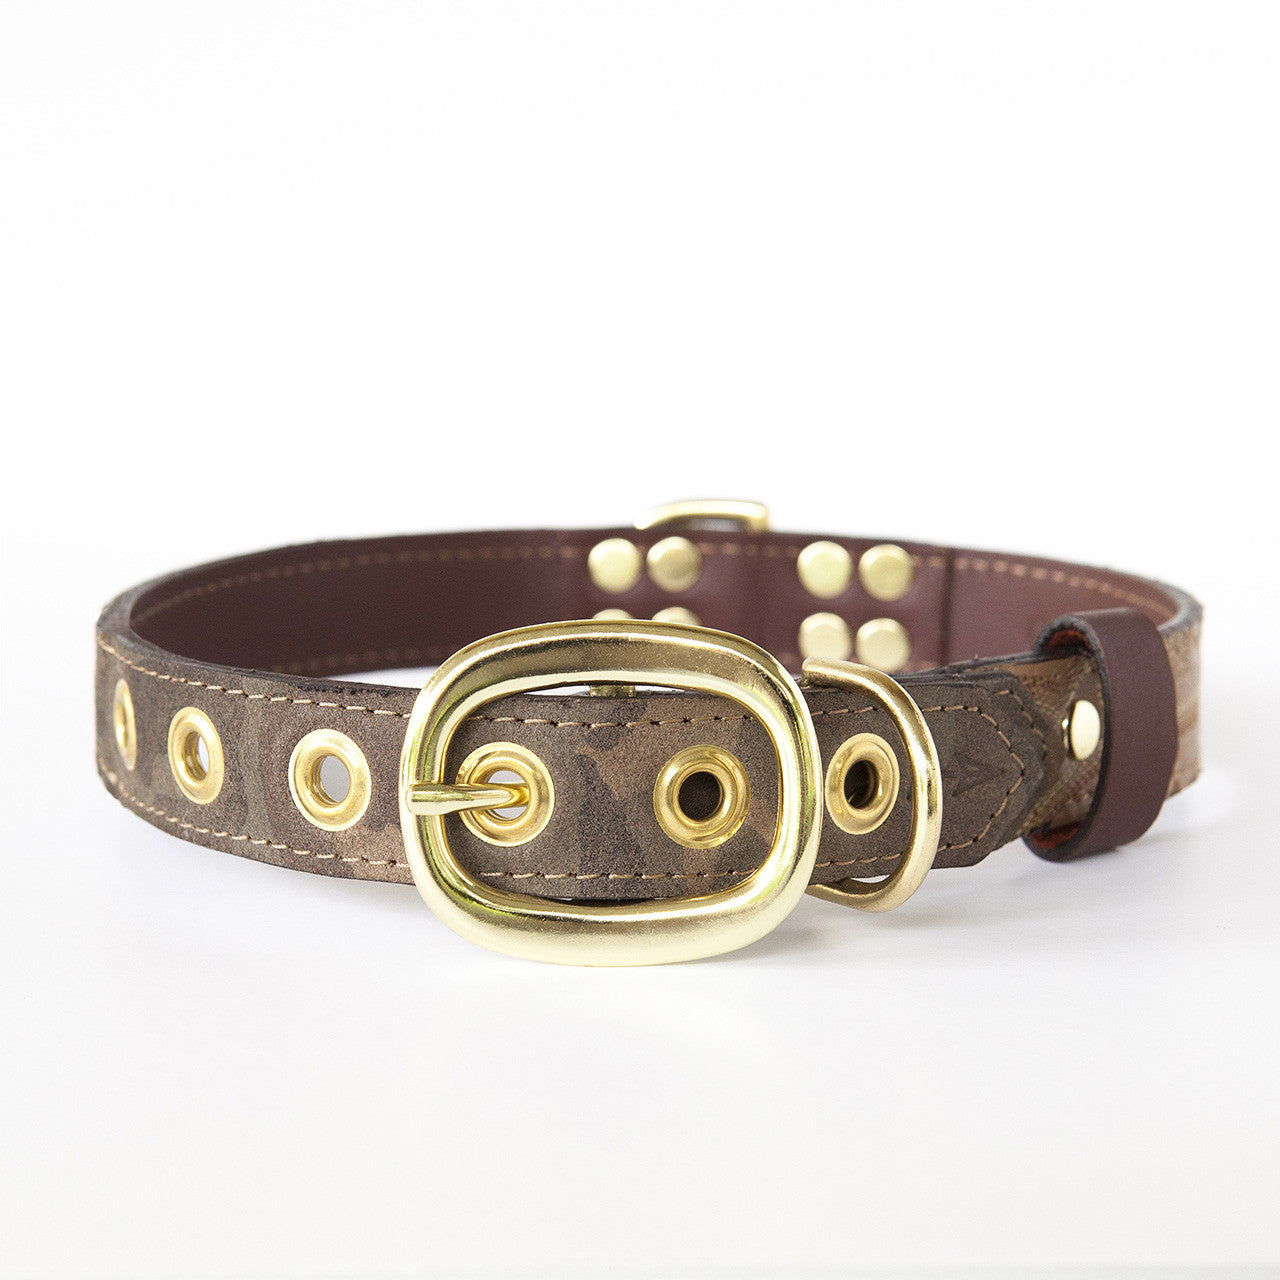 Camo Dog Collar with Tan Leather + Brown and White Stitching (back view)